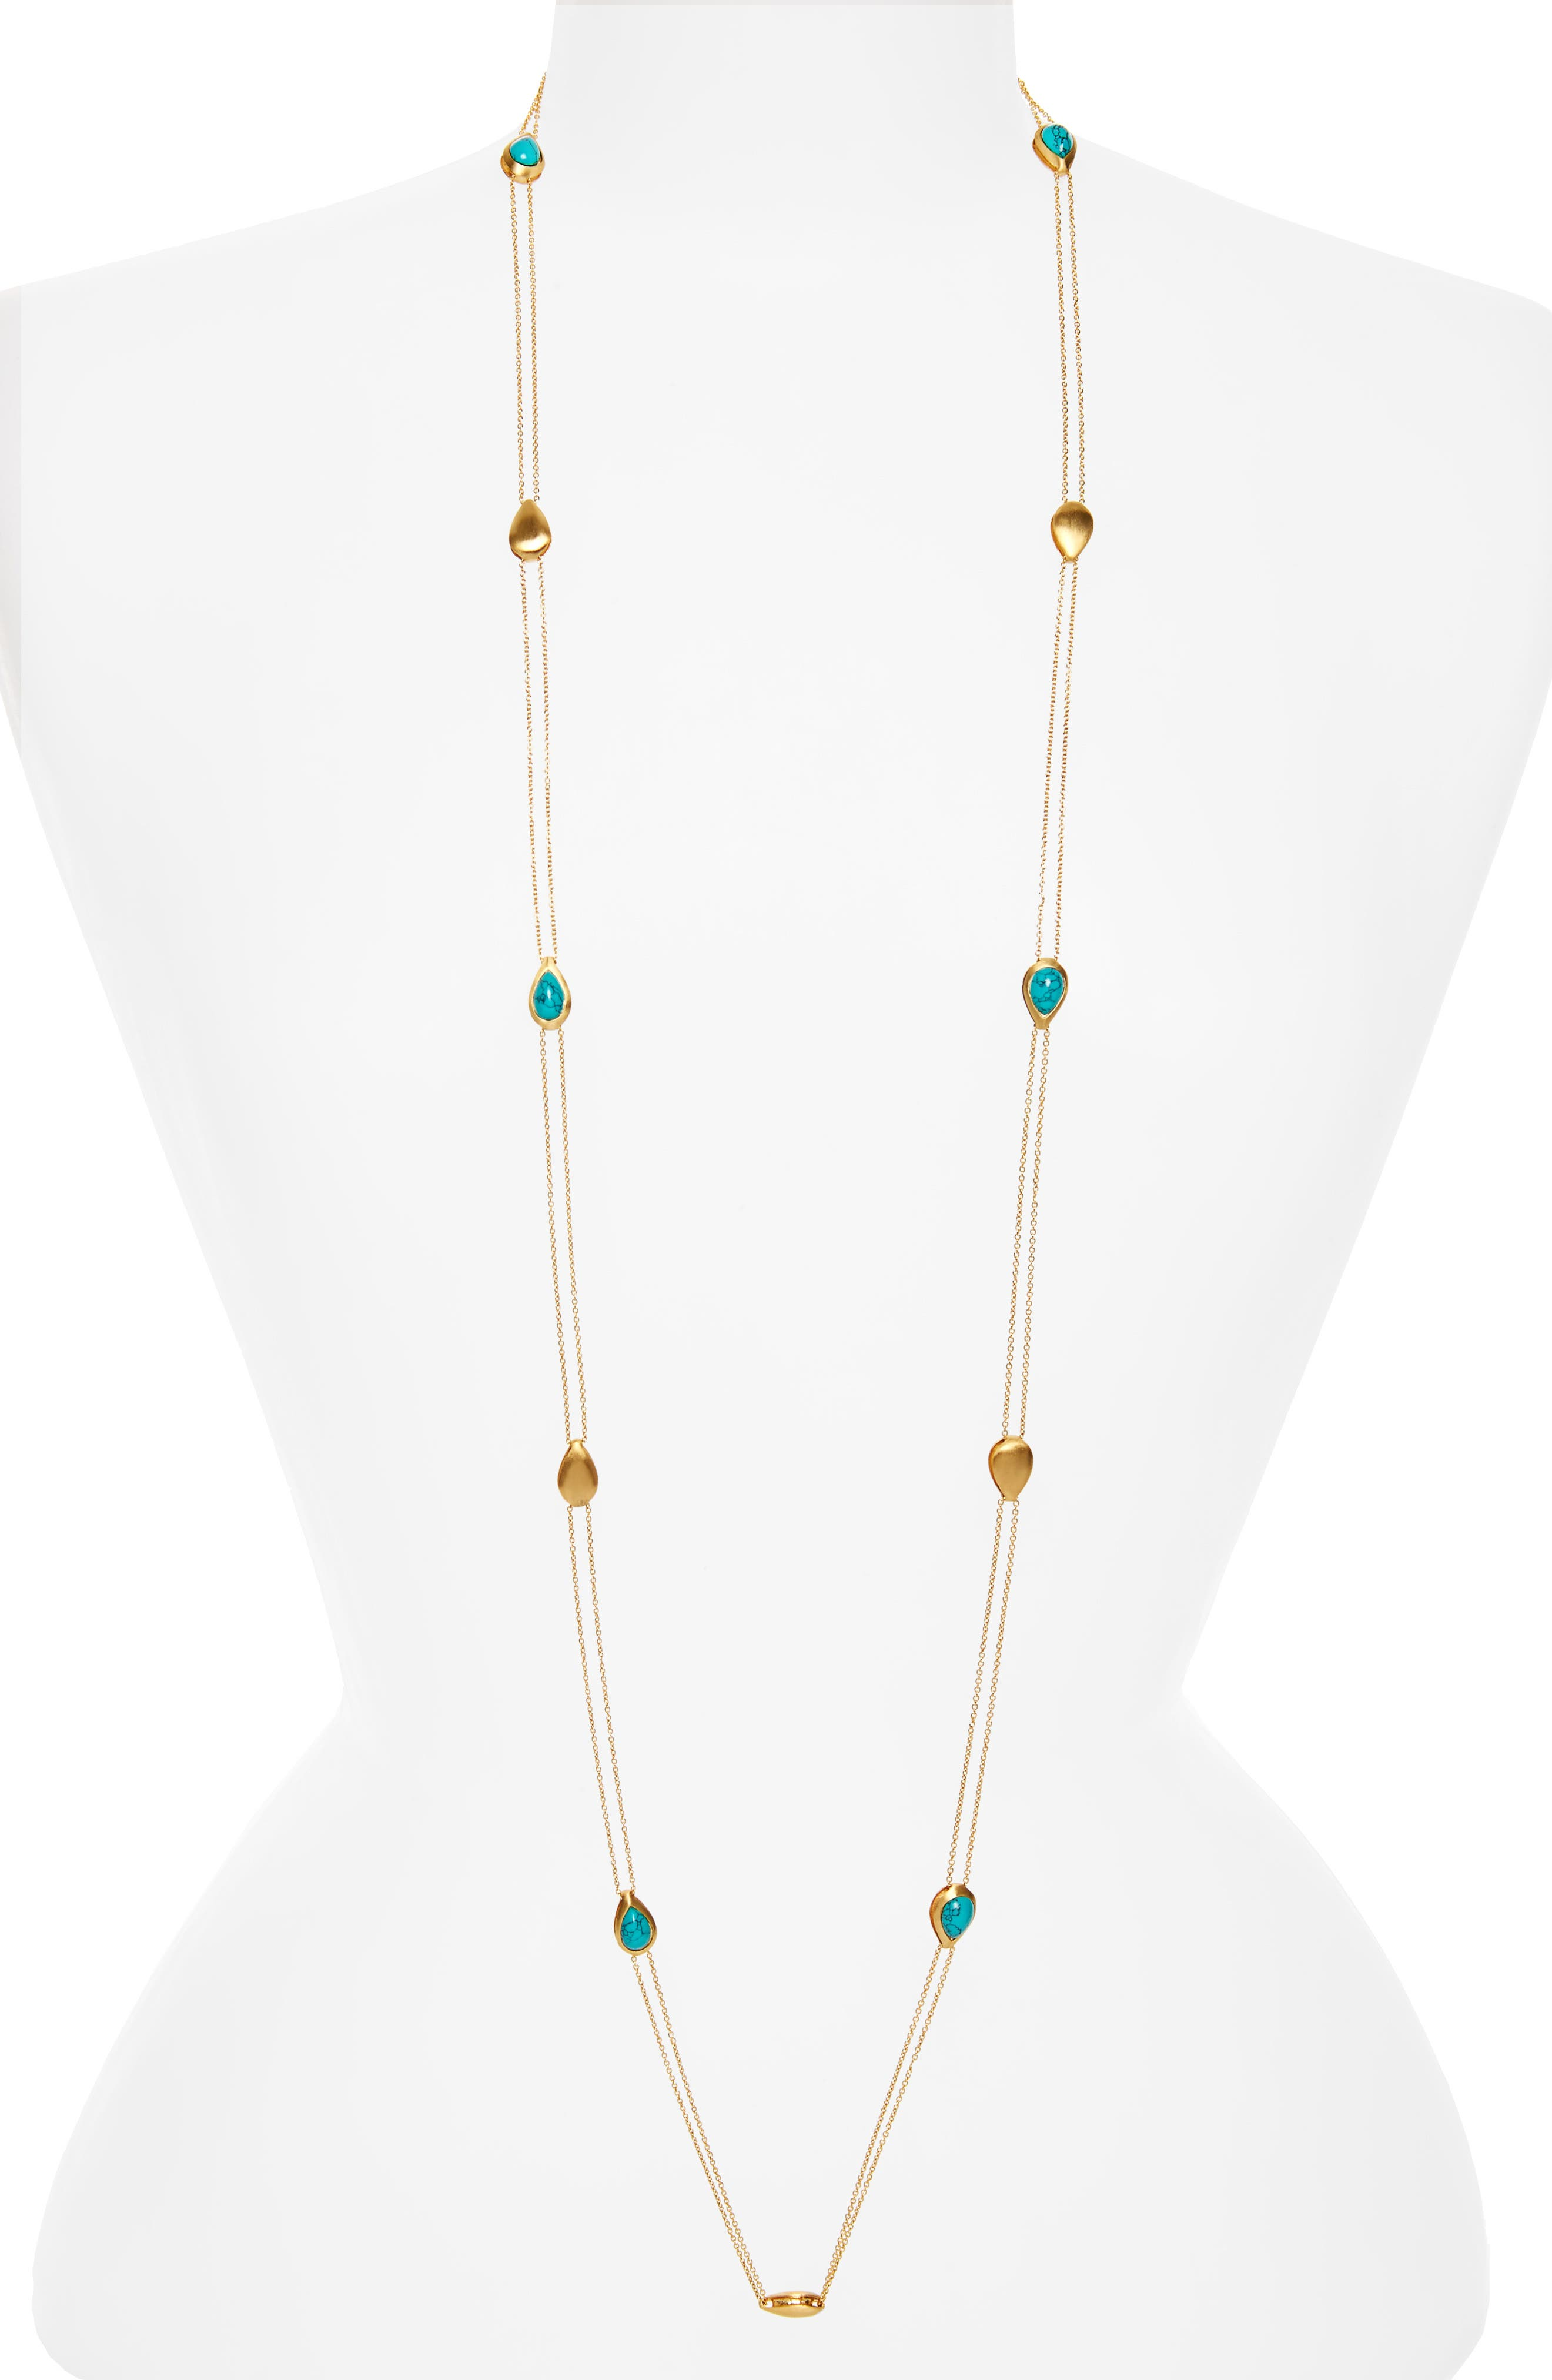 Reign Reversible Charm Necklace,                         Main,                         color, Turquoise/ Rainbow Moonstone